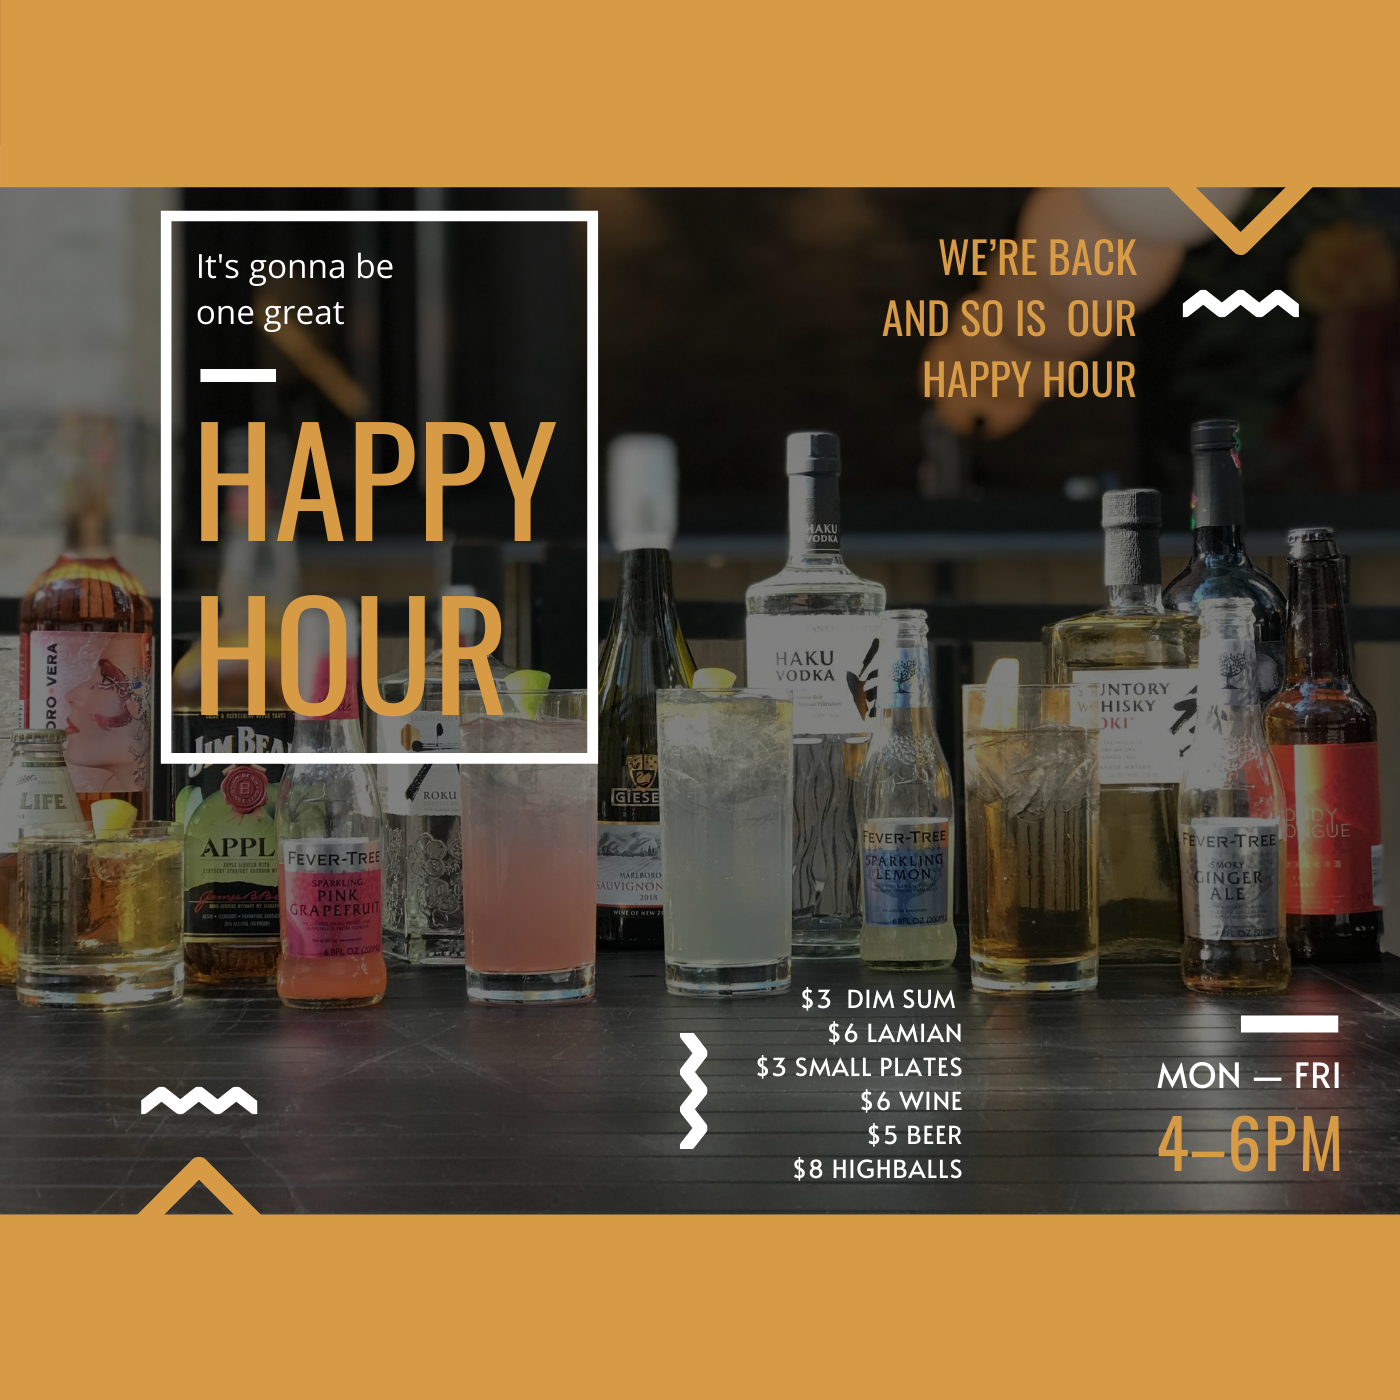 ALL NEW HAPPY HOUR MENU - We are so excited to announce that Imperial Lamian is back and with us we bring our all NEW Happy Hour!•$3 Dim Sum•$6 Lamian •$3 Small Plates•$6 Wine•$5 Beer• $8 Suntory Highballs